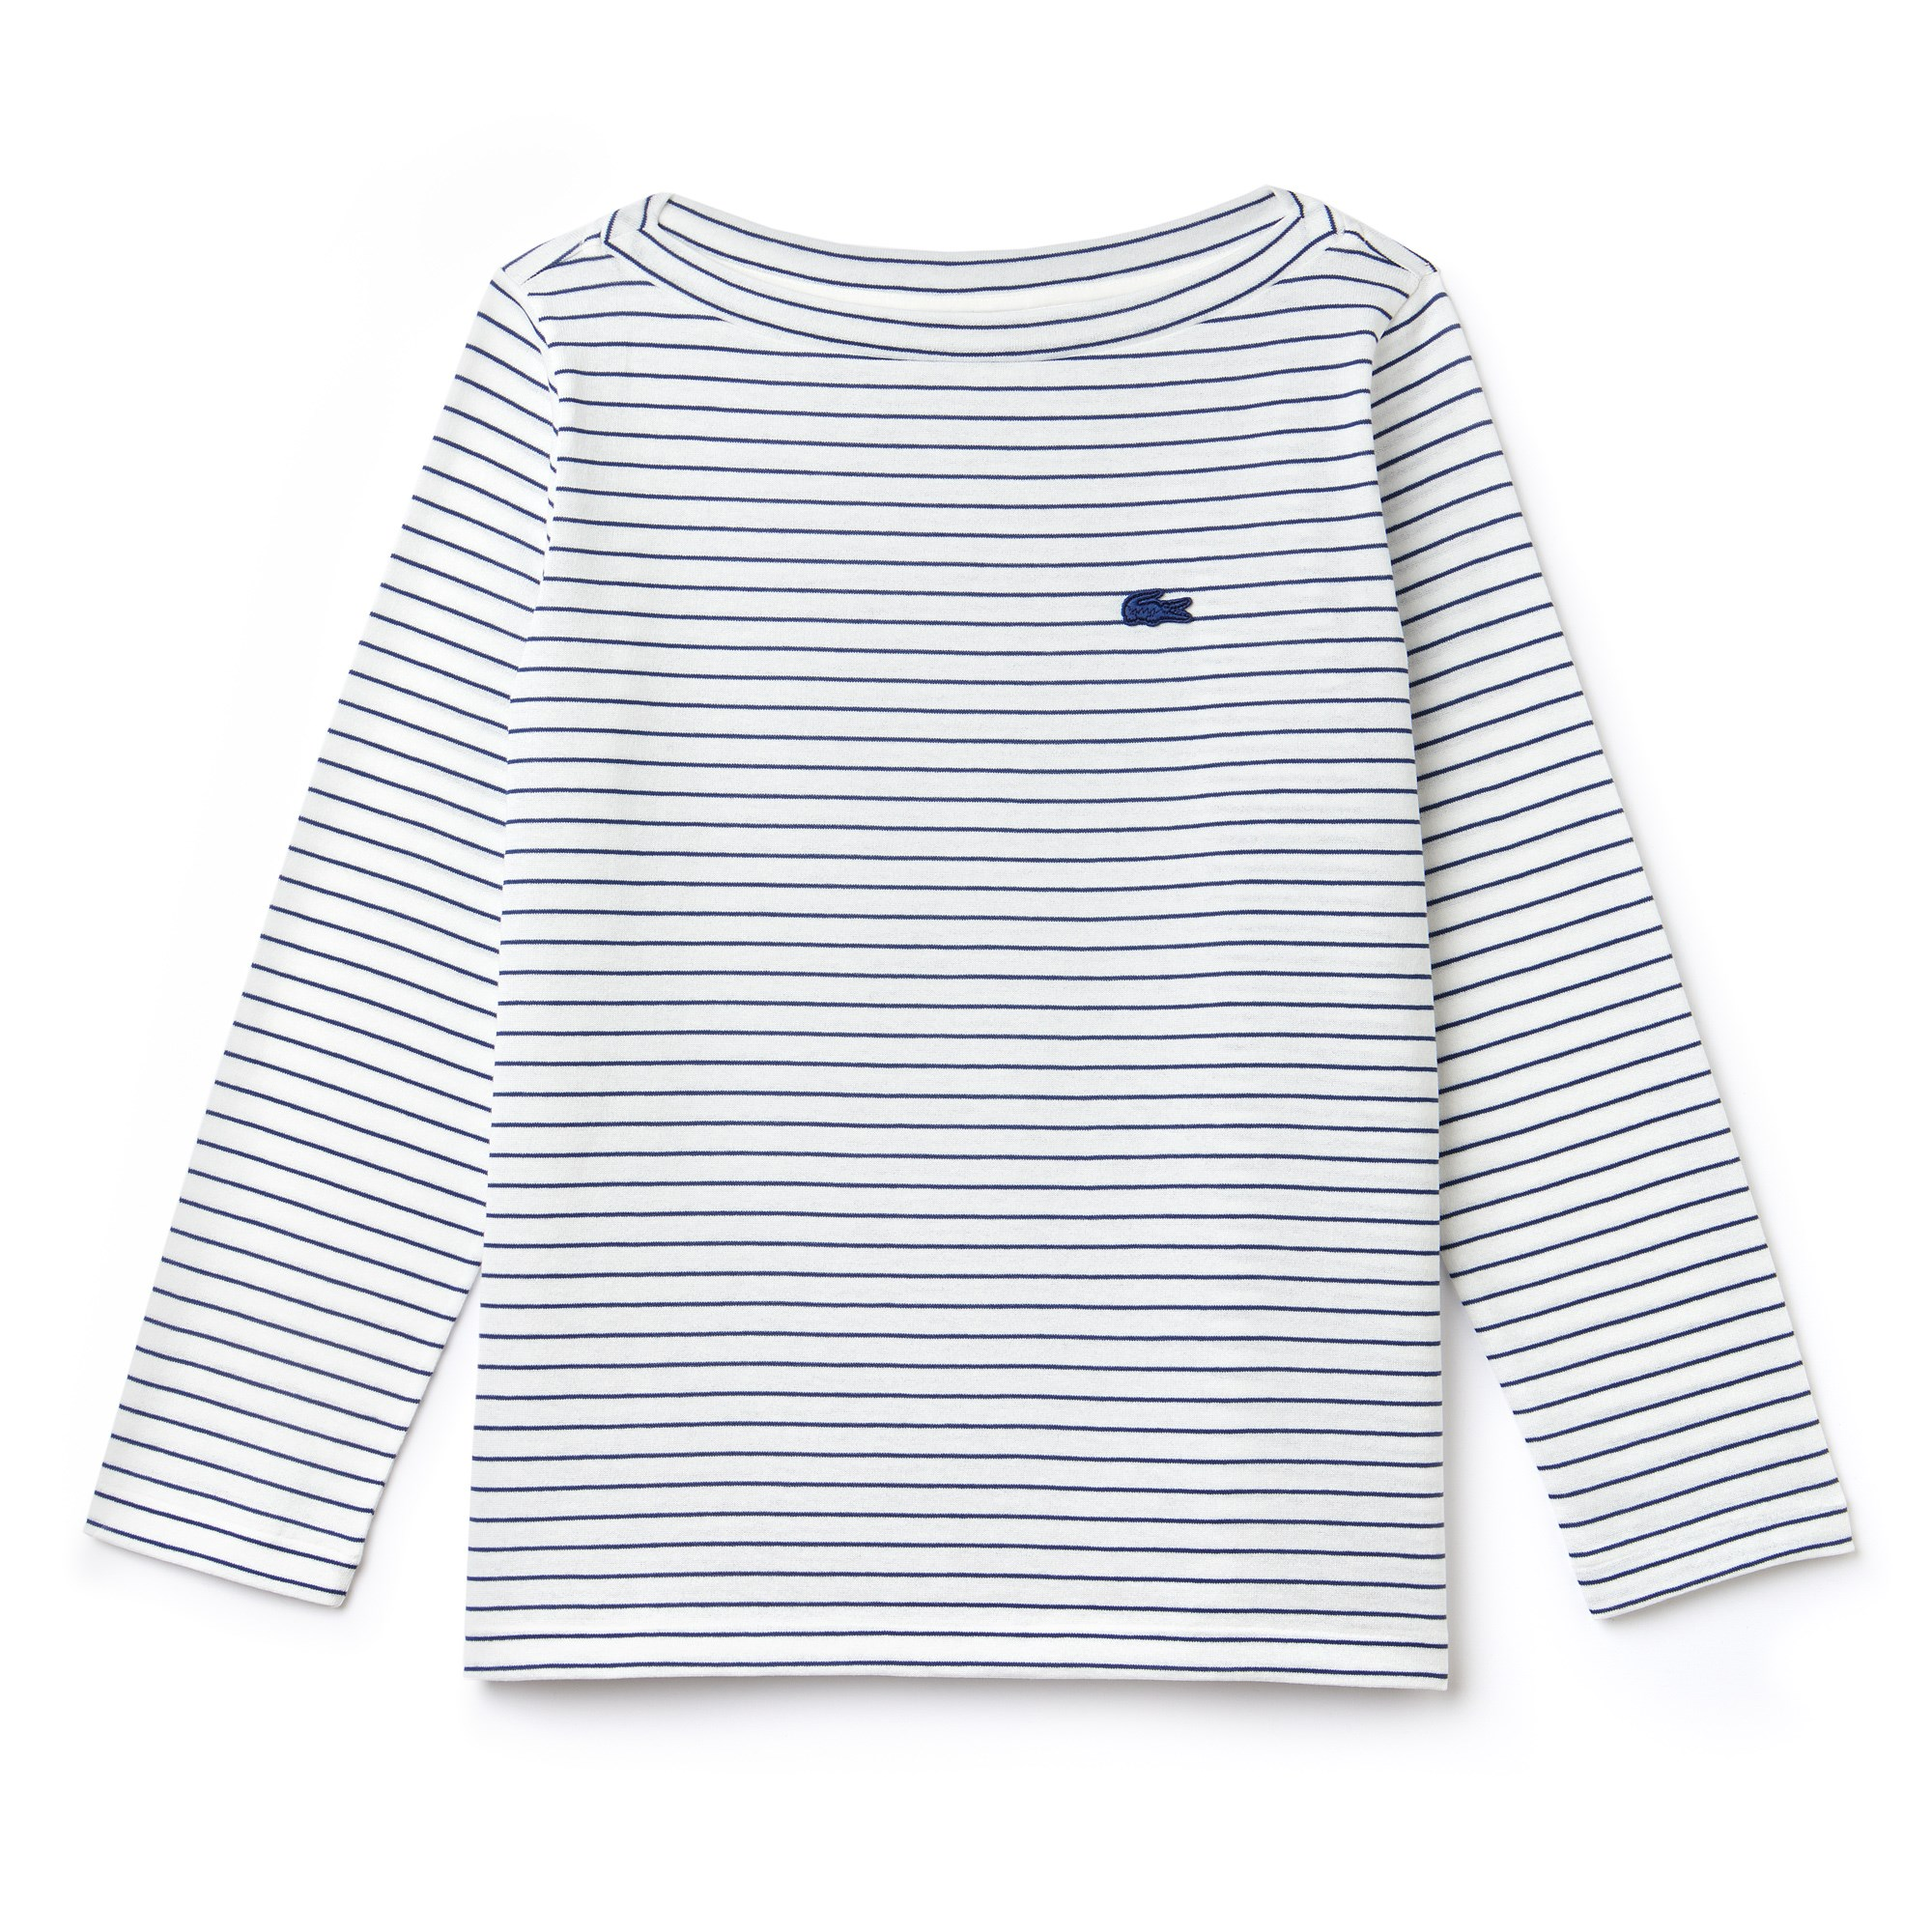 Women's Boat Neck Striped Cotton Jersey Nautical Shirt